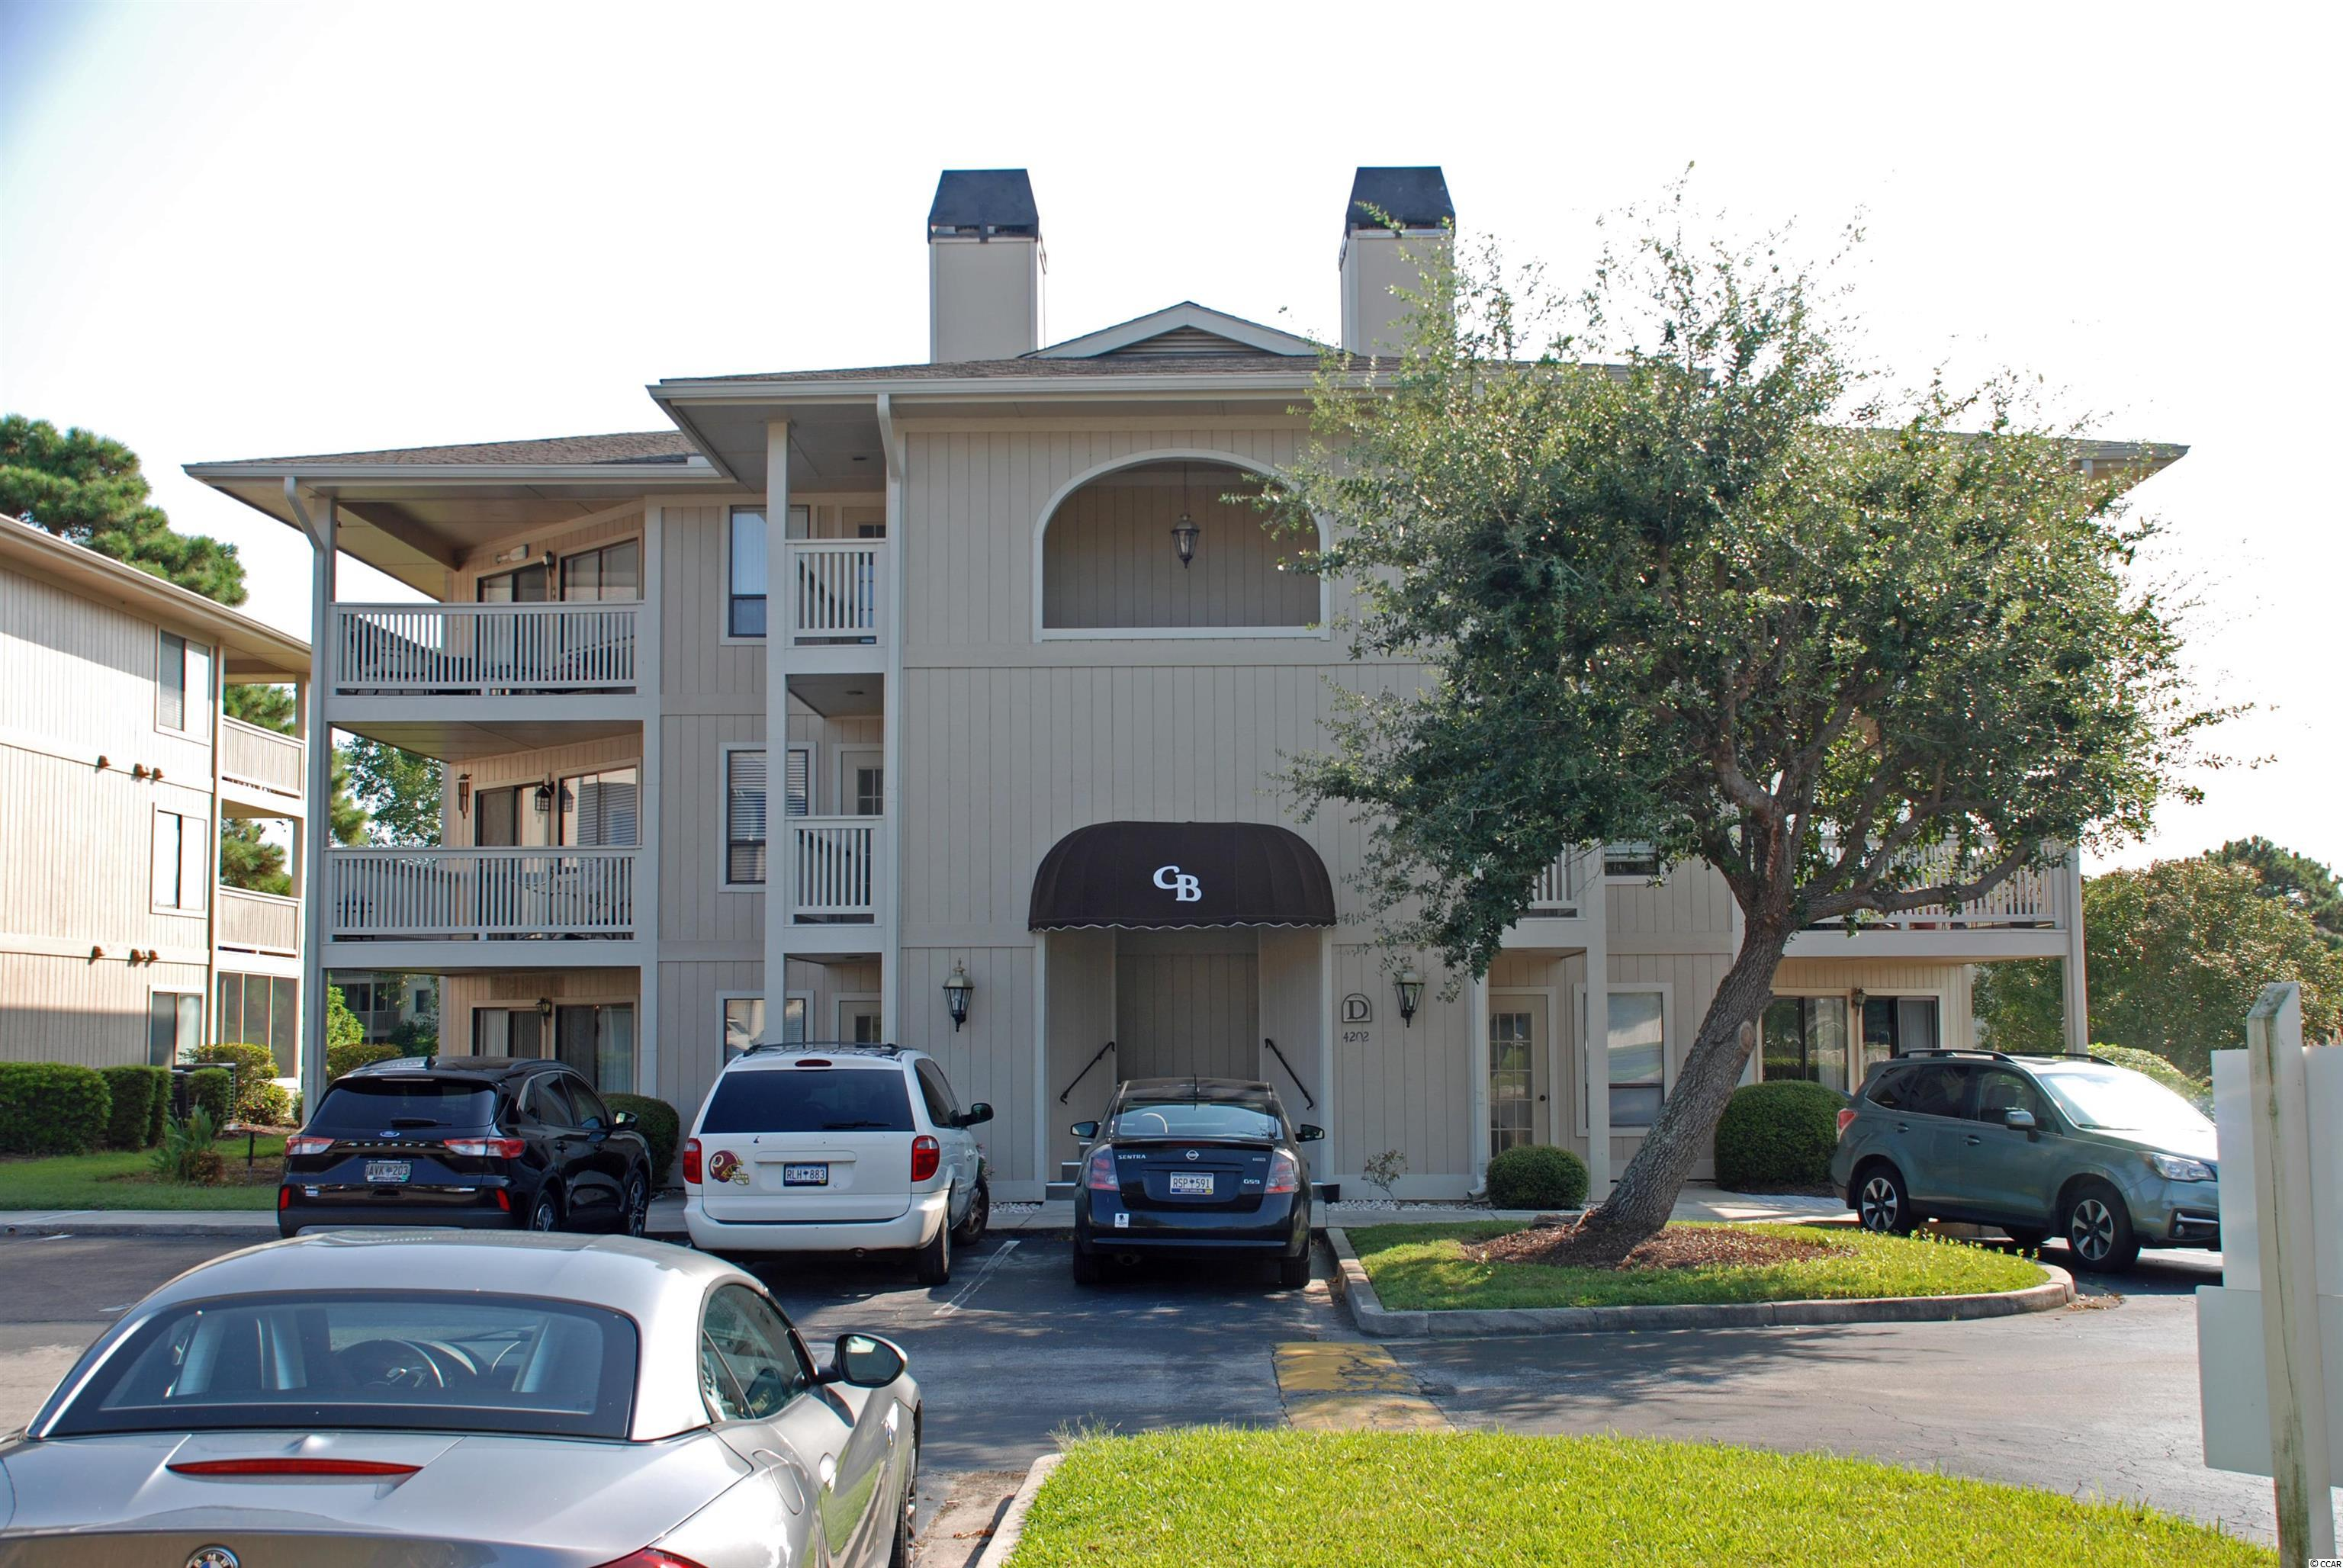 Own your piece of SC living with this 2 bed/2 bath corner unit in the highly desirable Cypress Bay. The unit has a large porch off of the living room and each bedroom has it's own porch as well, enough outdoor space for everyone. The unit needs some TLC, but that gives you the opportunity to make it your own. Convenient to the Little River Waterfront, shopping, dining, and golfing you can have fun all day and relax at the community pool in the evening. Less than 15 minutes to the beach, you CAN have it all.